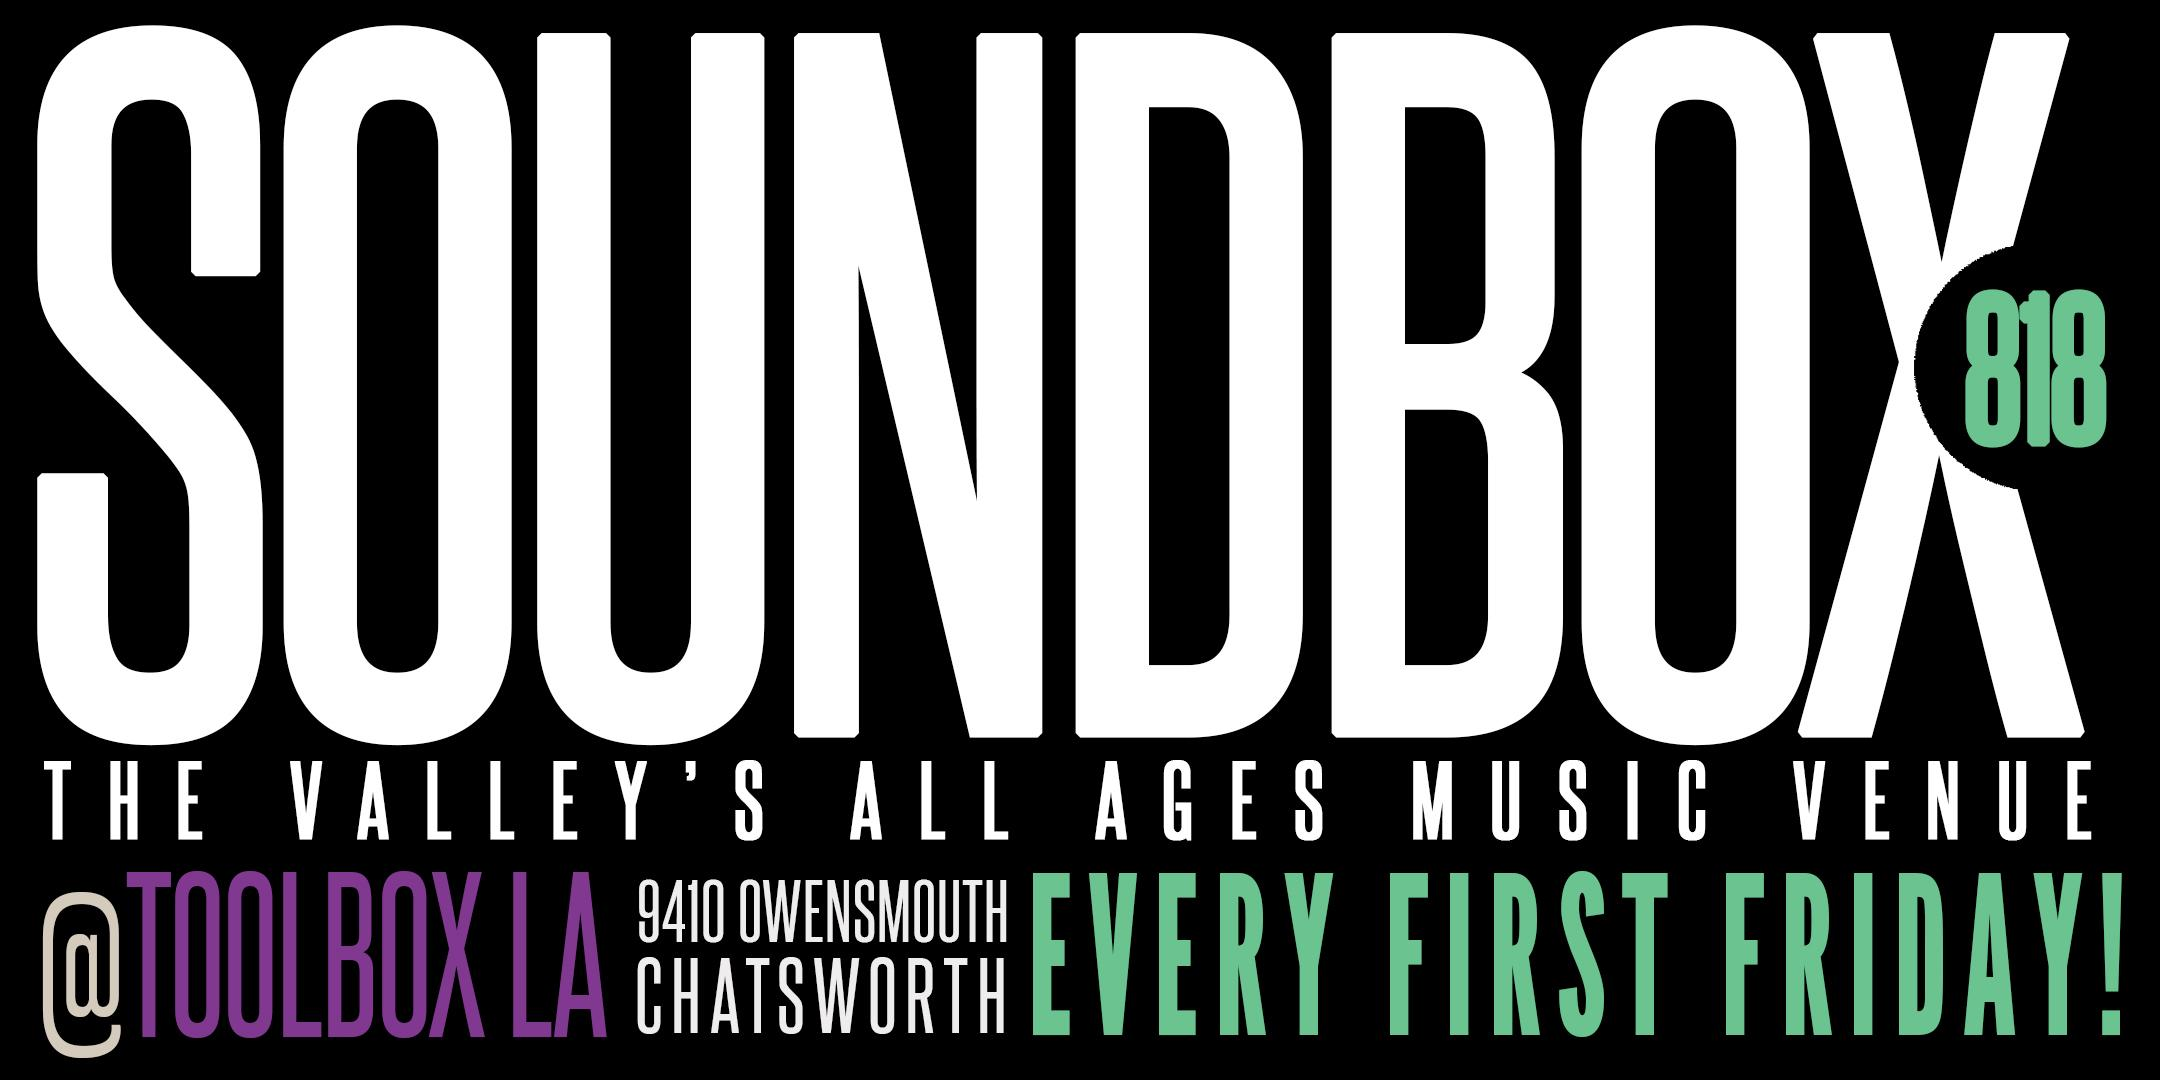 SOUNDBOX 818: The Valley's All Ages Music Venue